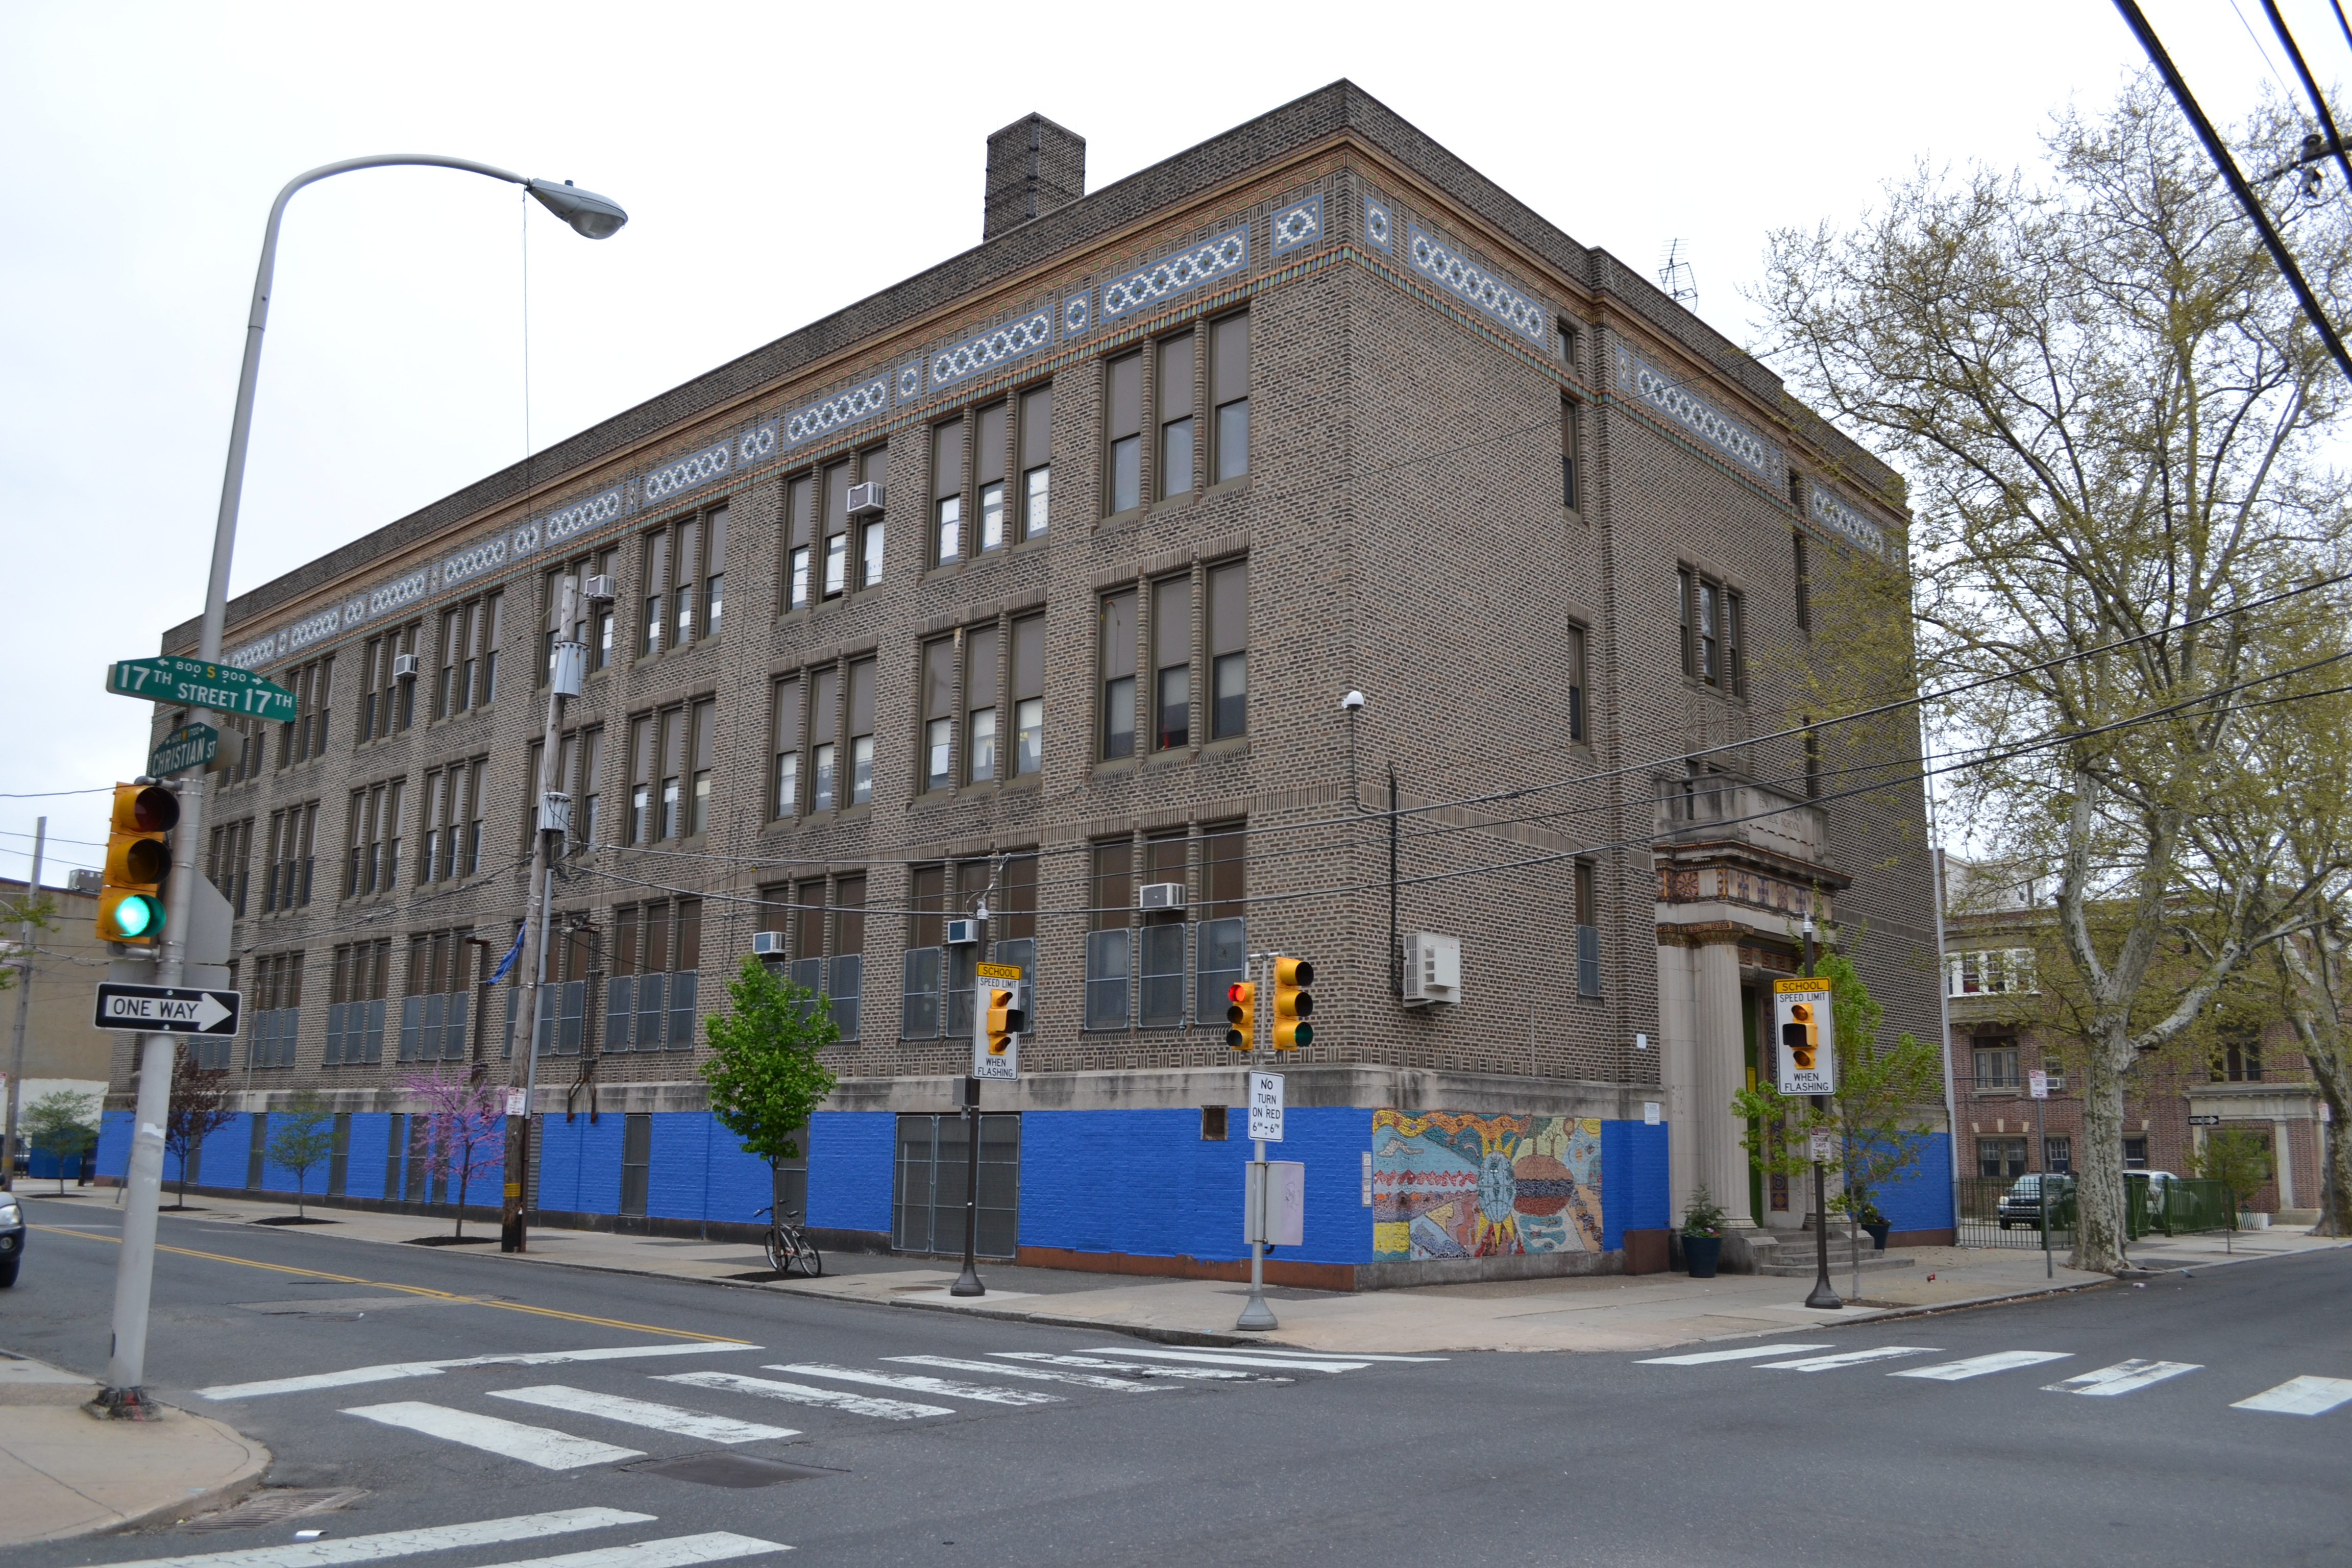 The project scope is limited to the schoolyard, not the full permitter of the building